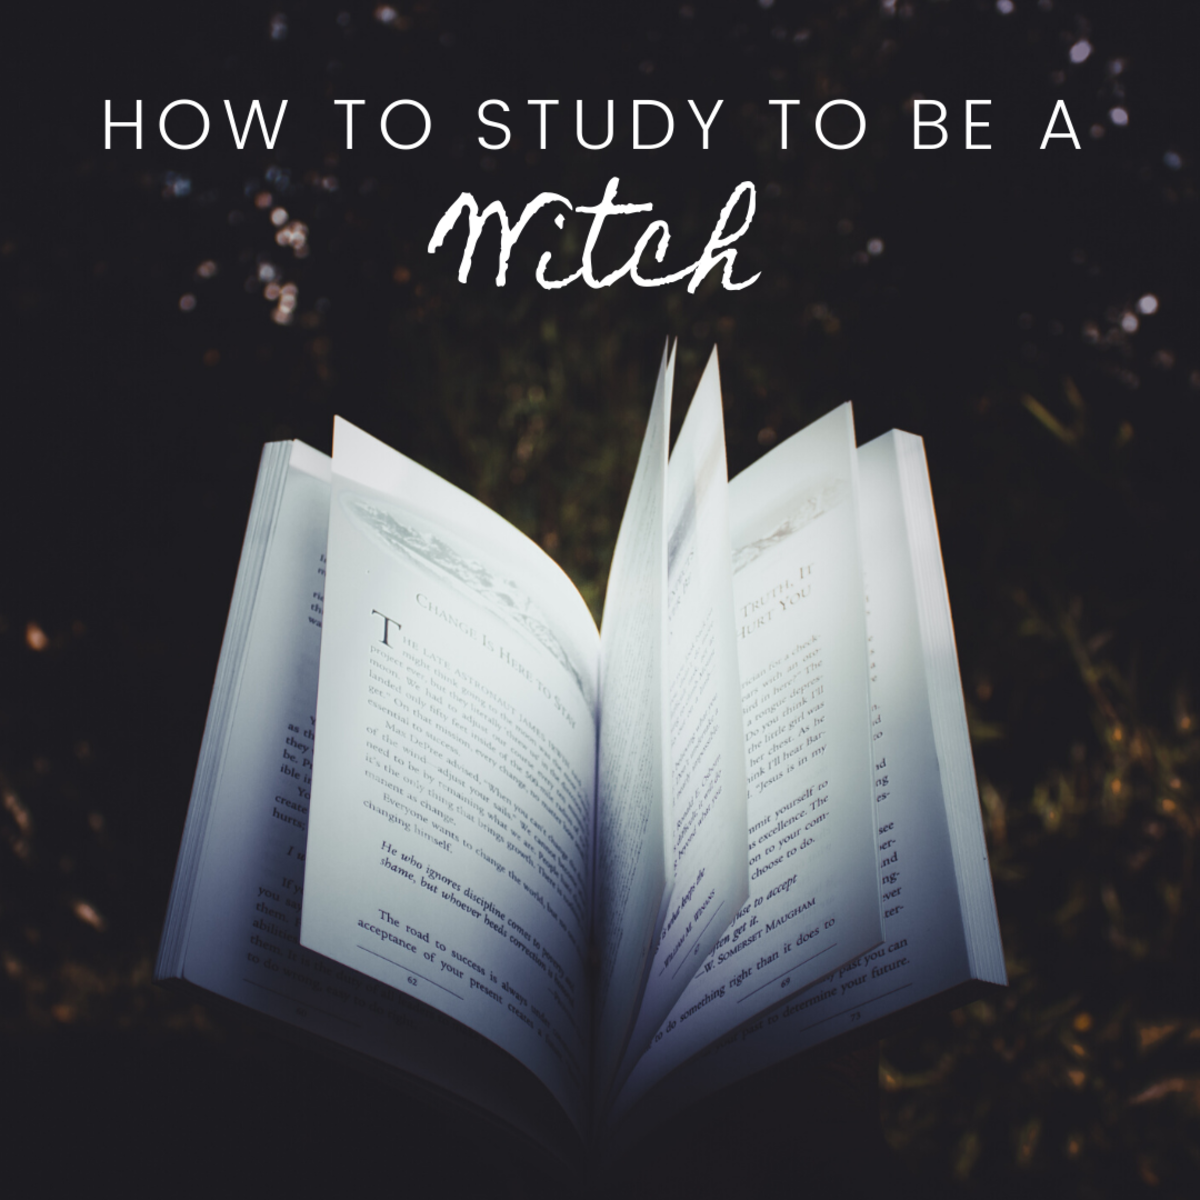 How to Study to Be a Witch